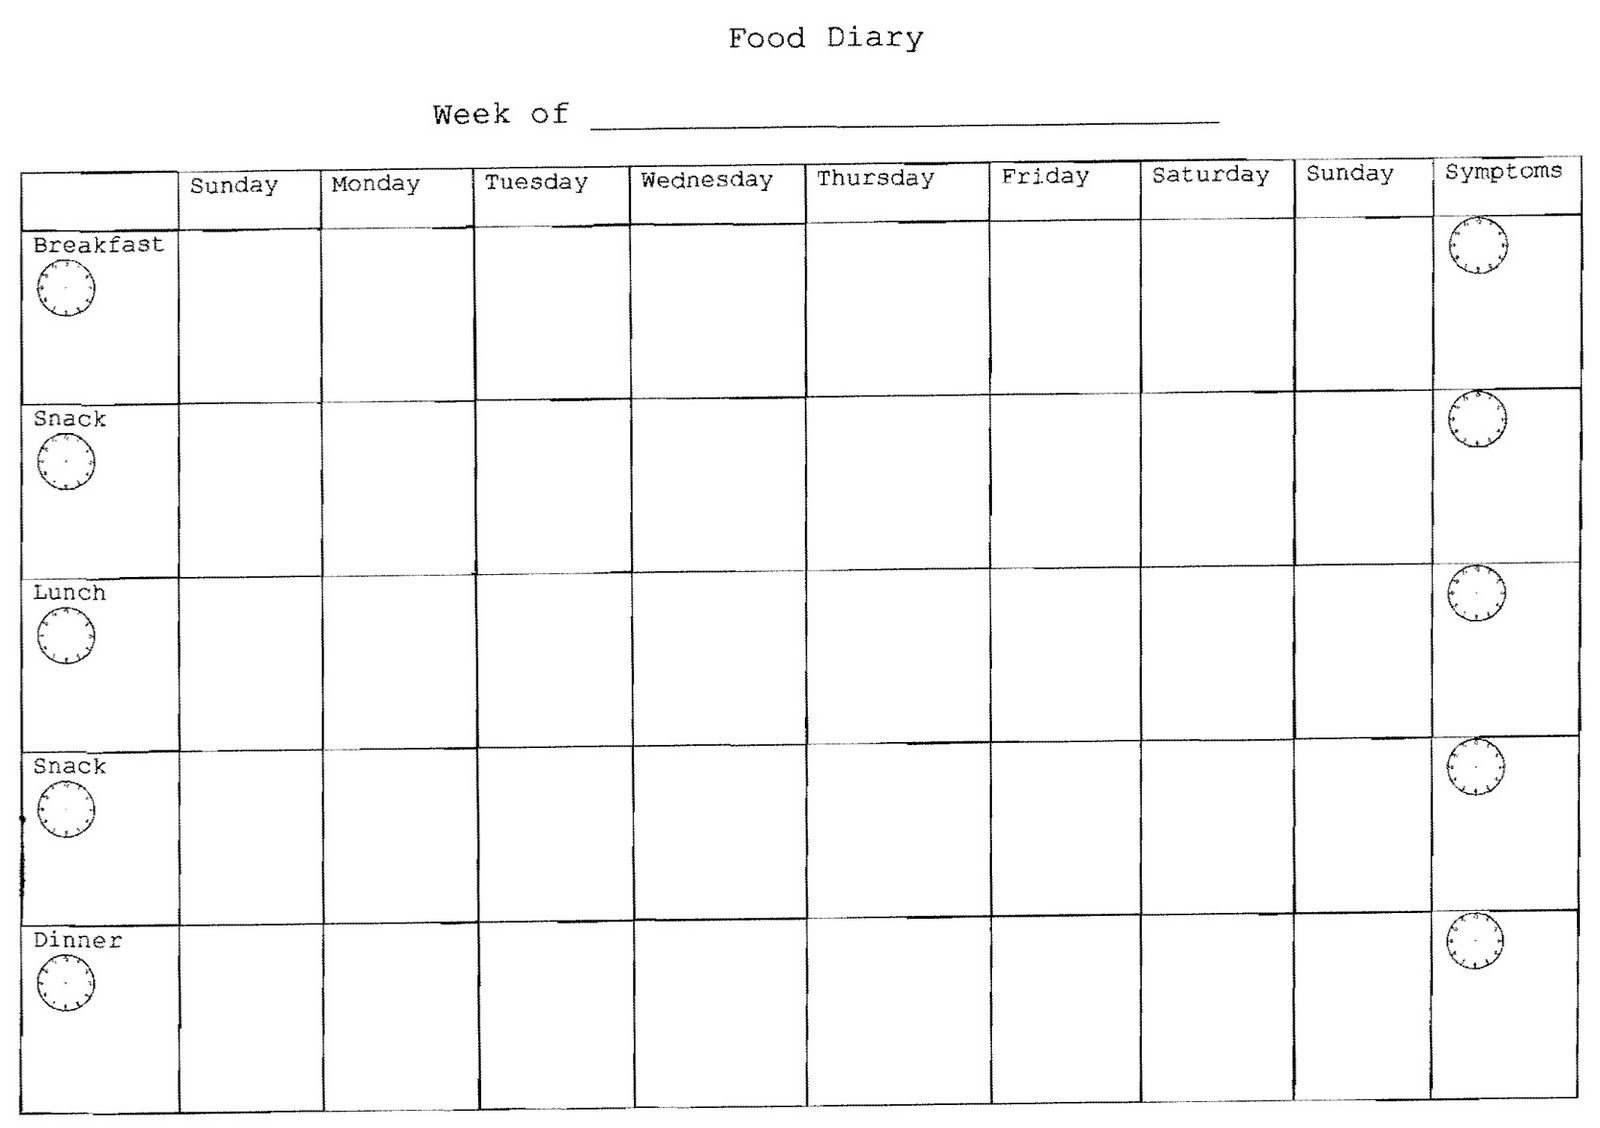 7 Day Food Diary Template Pictures to Pin PinsDaddy – 3 Day Food Diary Template